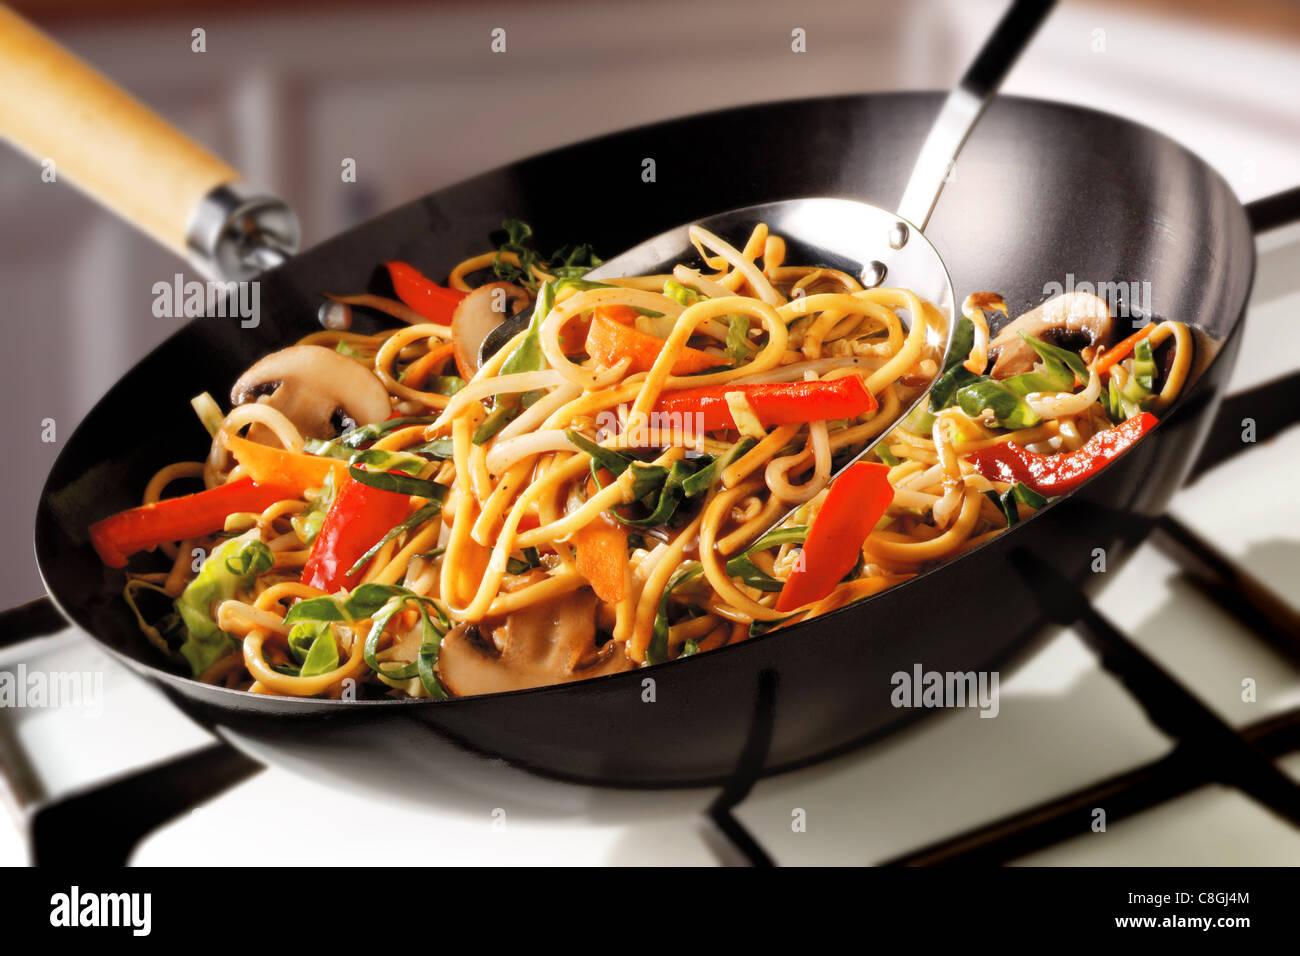 Stir Fry Noodles, peppers, mushrooms & carrots - Stock Image